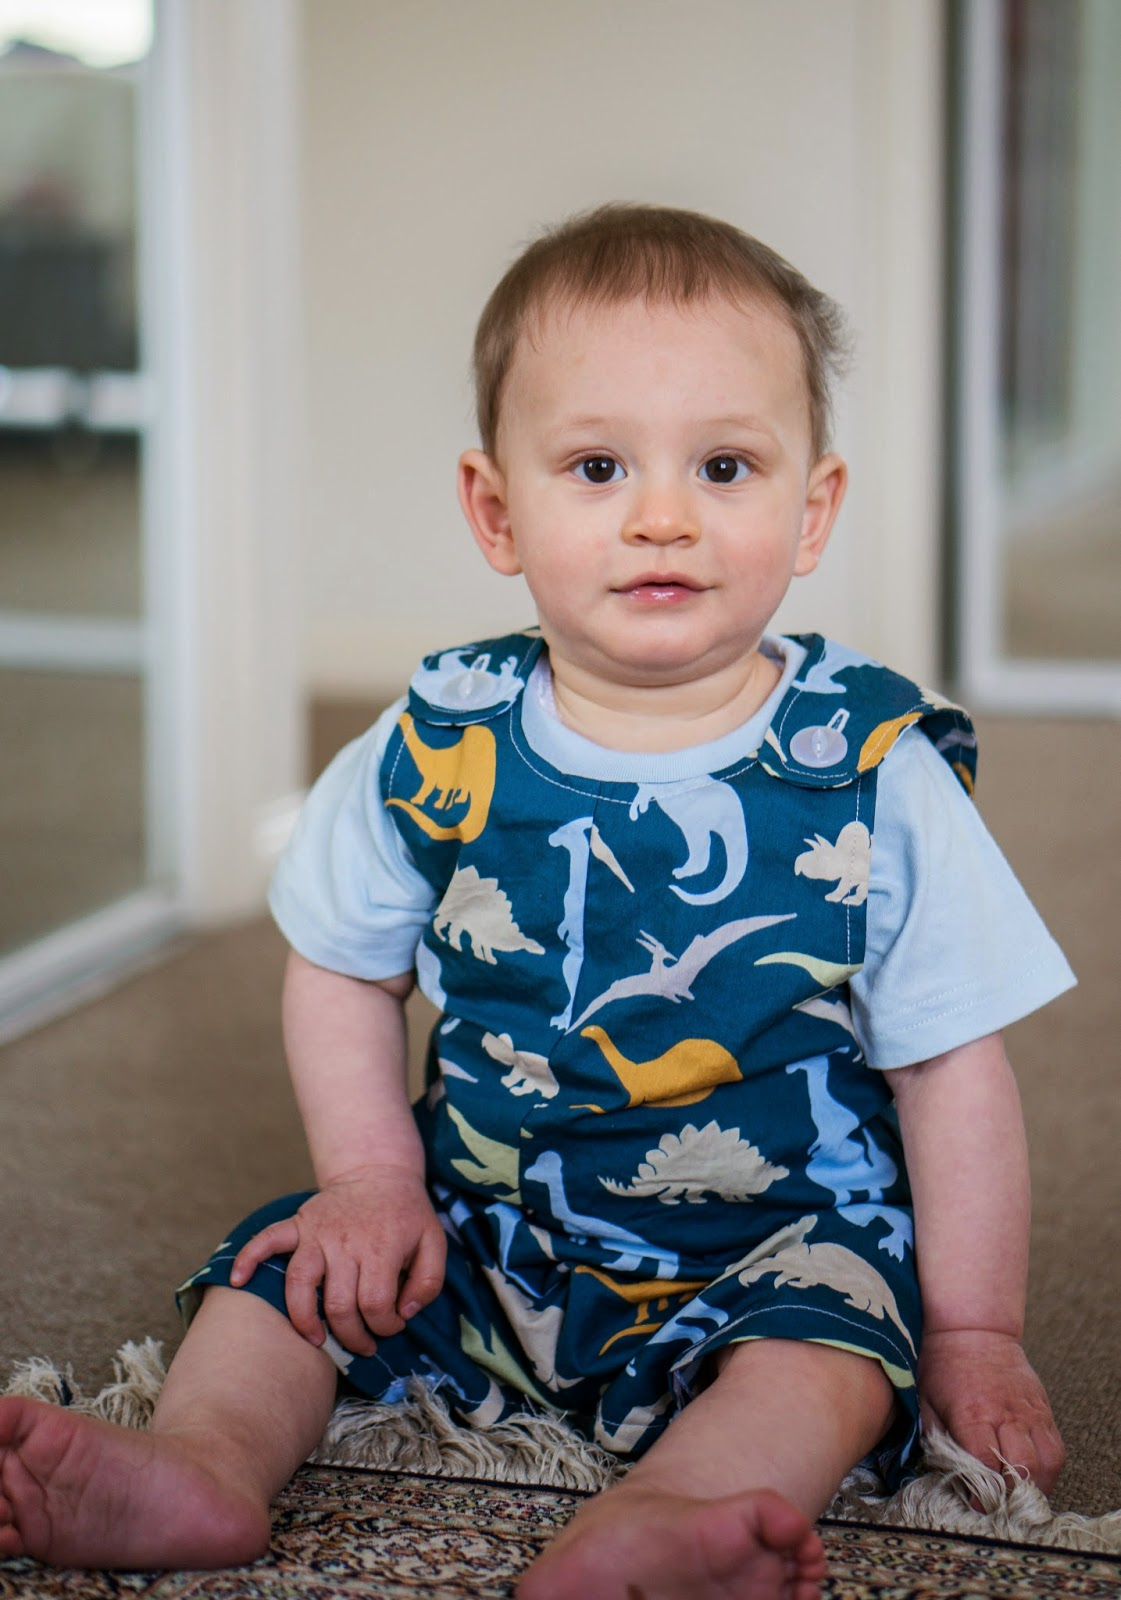 Baby Boys' Clothing. Let Amazon help you make dressing baby easier than ever. We have a huge a selection of comfy clothing for baby boys, including basics, adorable dress-up .